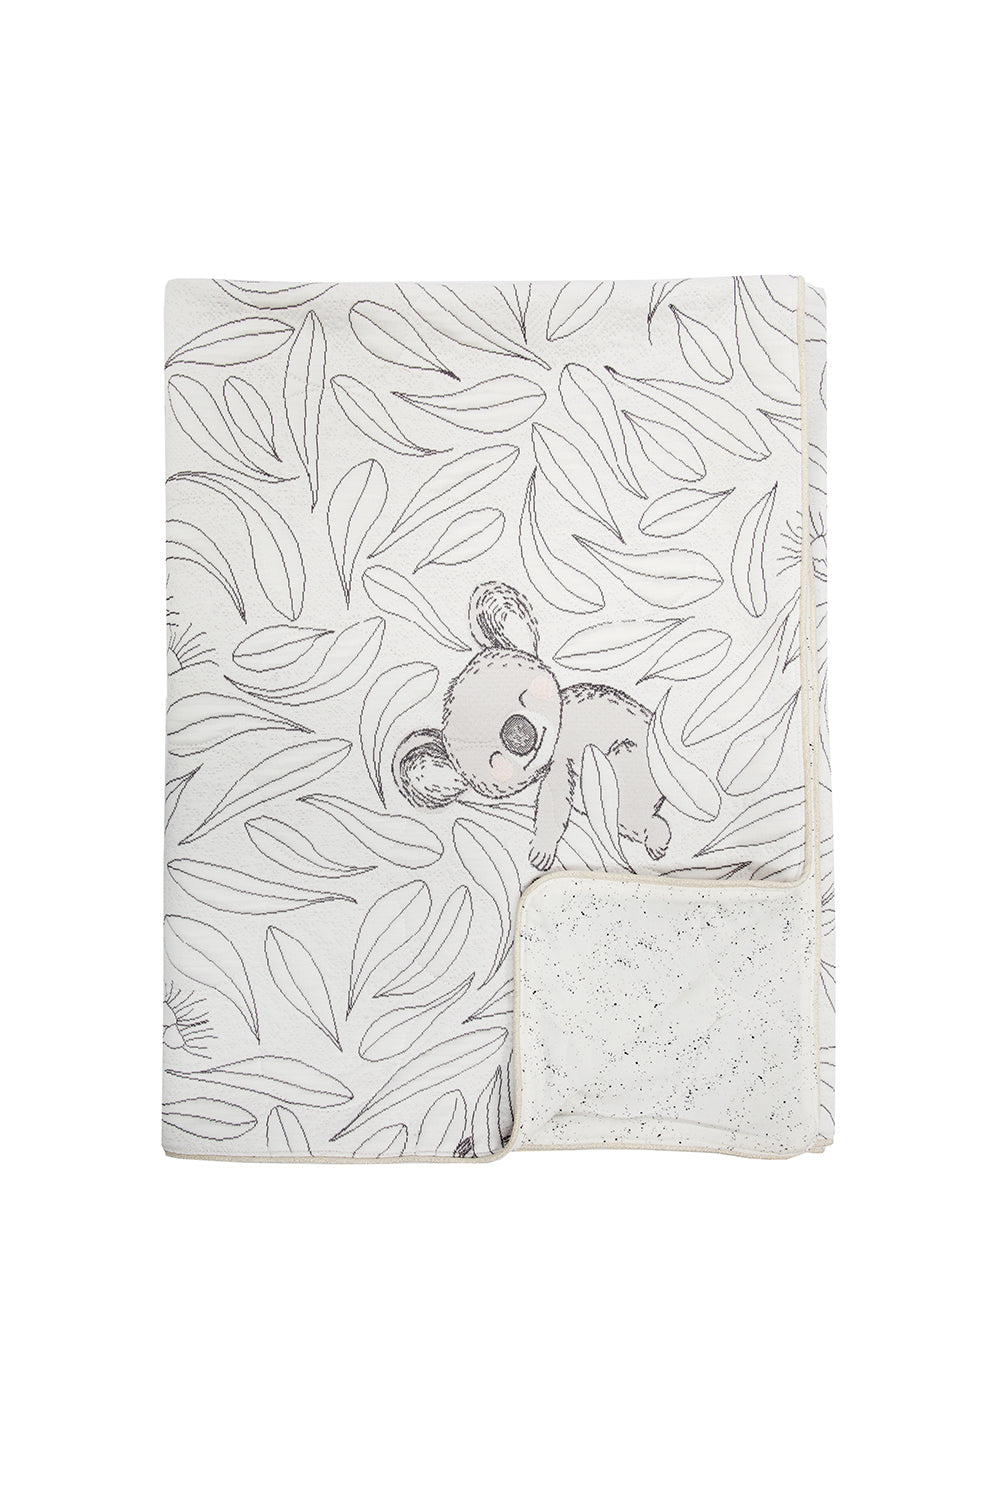 Cuddly Faces All Seasons Bedspread 2.1 x 1.4m